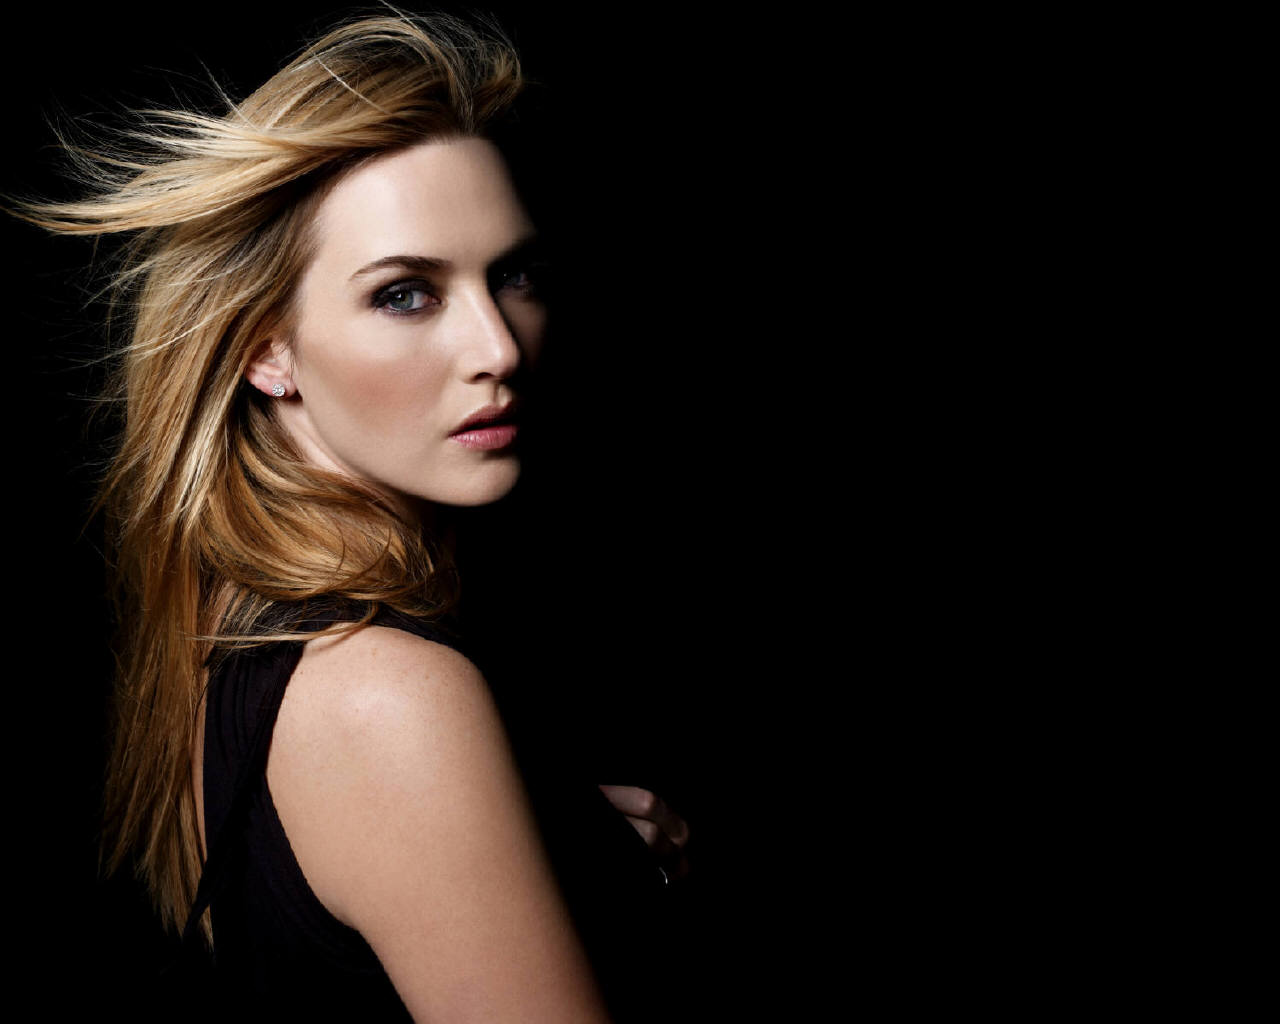 1280x1024 - Kate Winslet Wallpapers 8